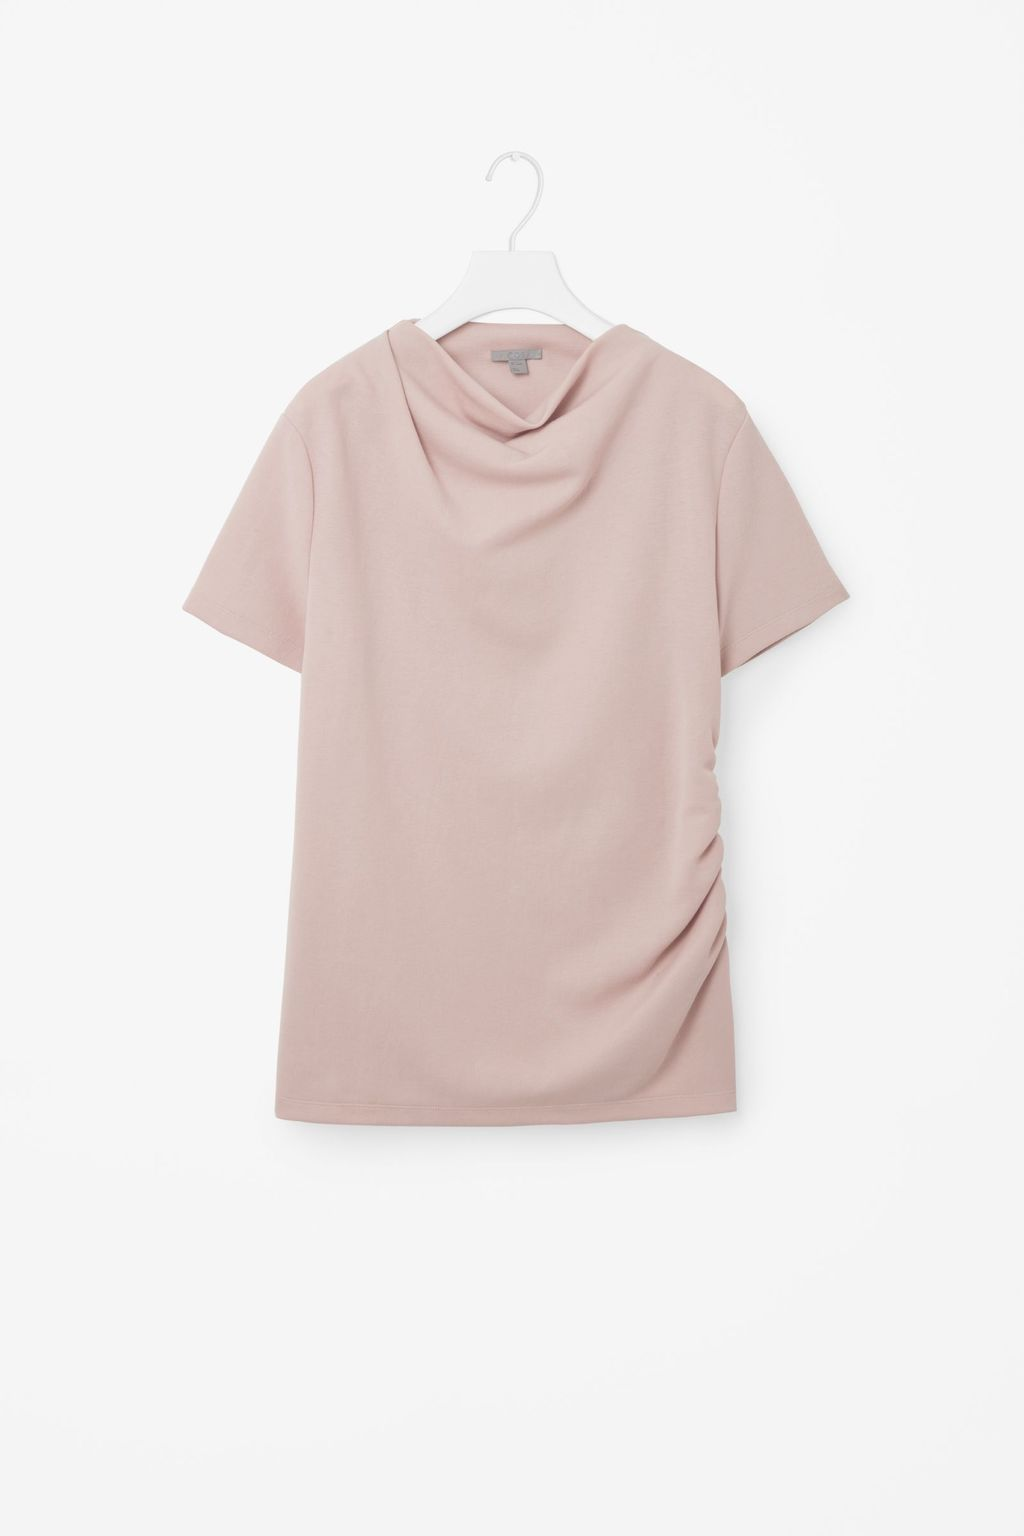 Collapsing Jersey Top - neckline: cowl/draped neck; pattern: plain; style: t-shirt; predominant colour: blush; occasions: casual, creative work; length: standard; fibres: polyester/polyamide - 100%; fit: straight cut; sleeve length: short sleeve; sleeve style: standard; texture group: crepes; pattern type: fabric; wardrobe: basic; season: a/w 2016